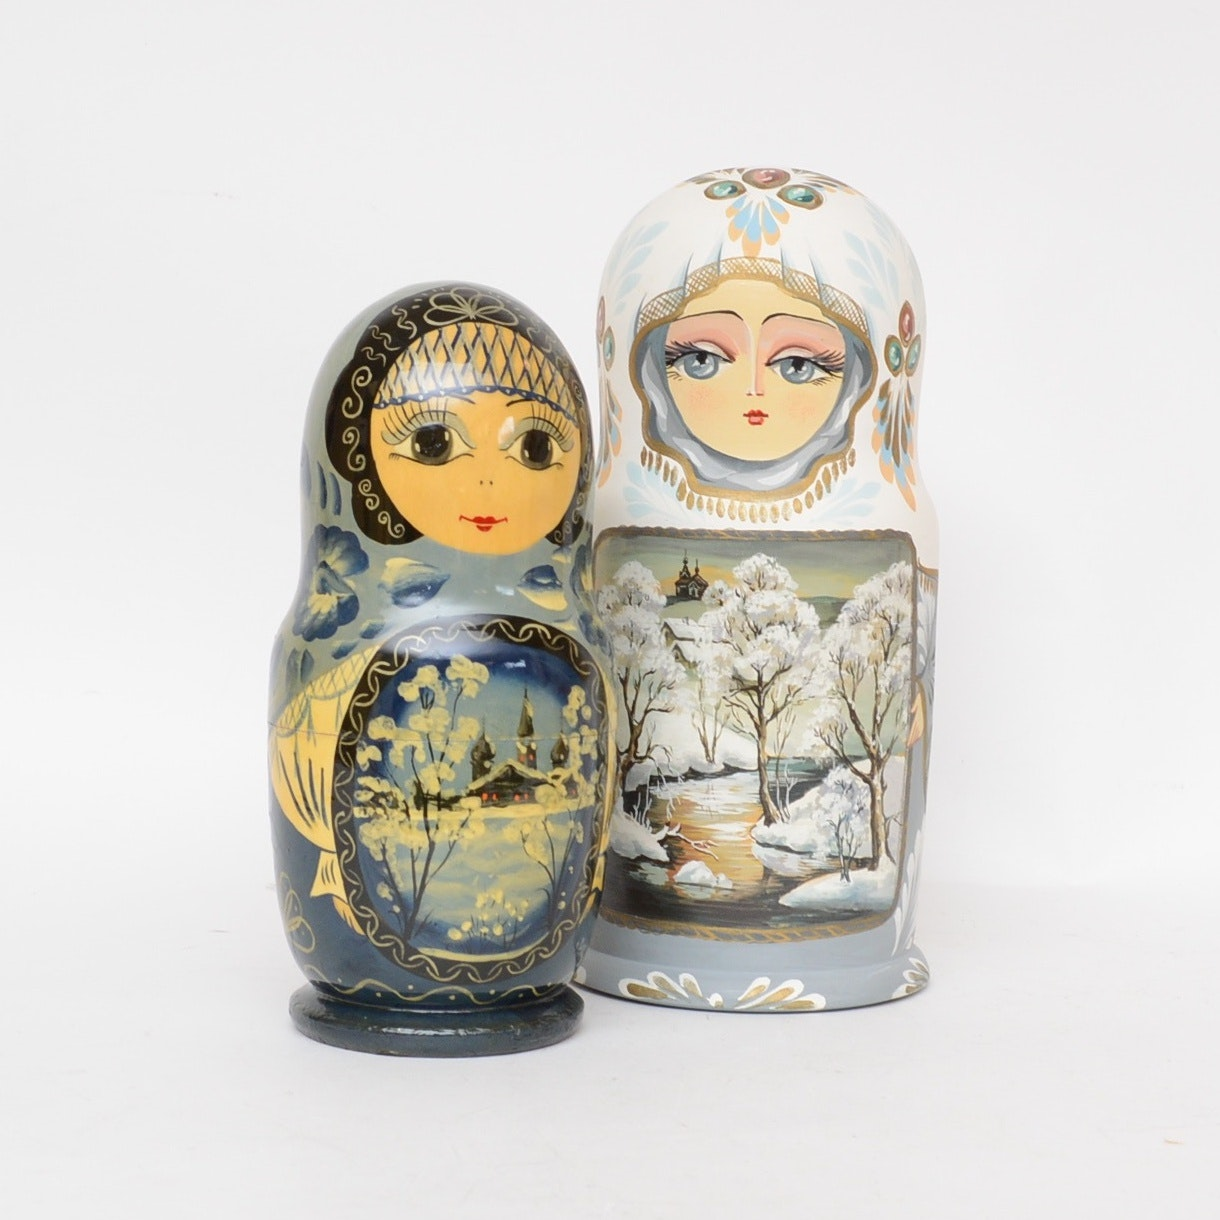 Pair of Large Hand-Painted and Signed Russian Nesting Dolls